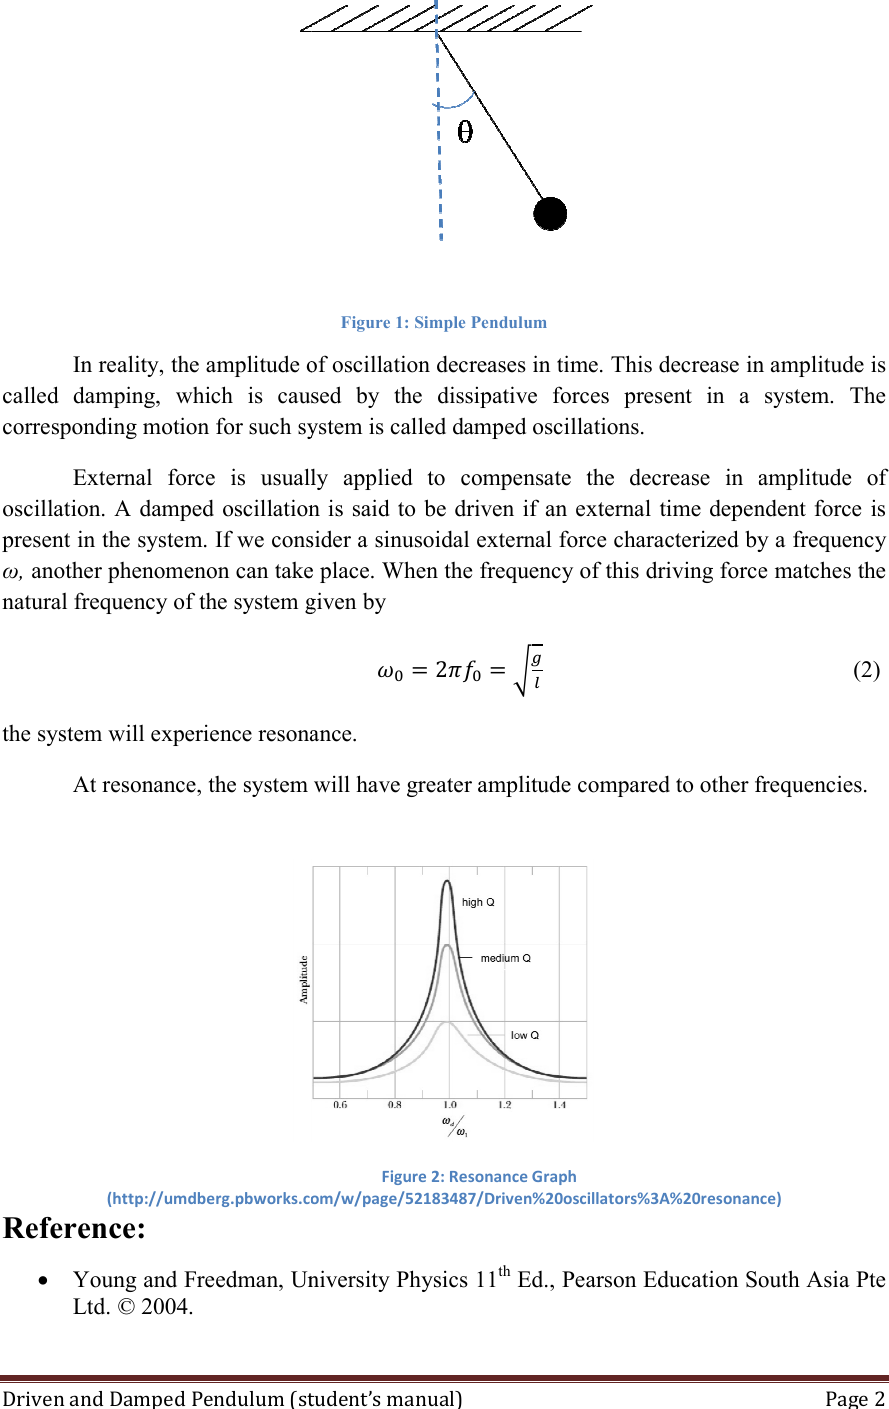 medium resolution of page 2 of 10 01 driven and damped pendulum experiment manual